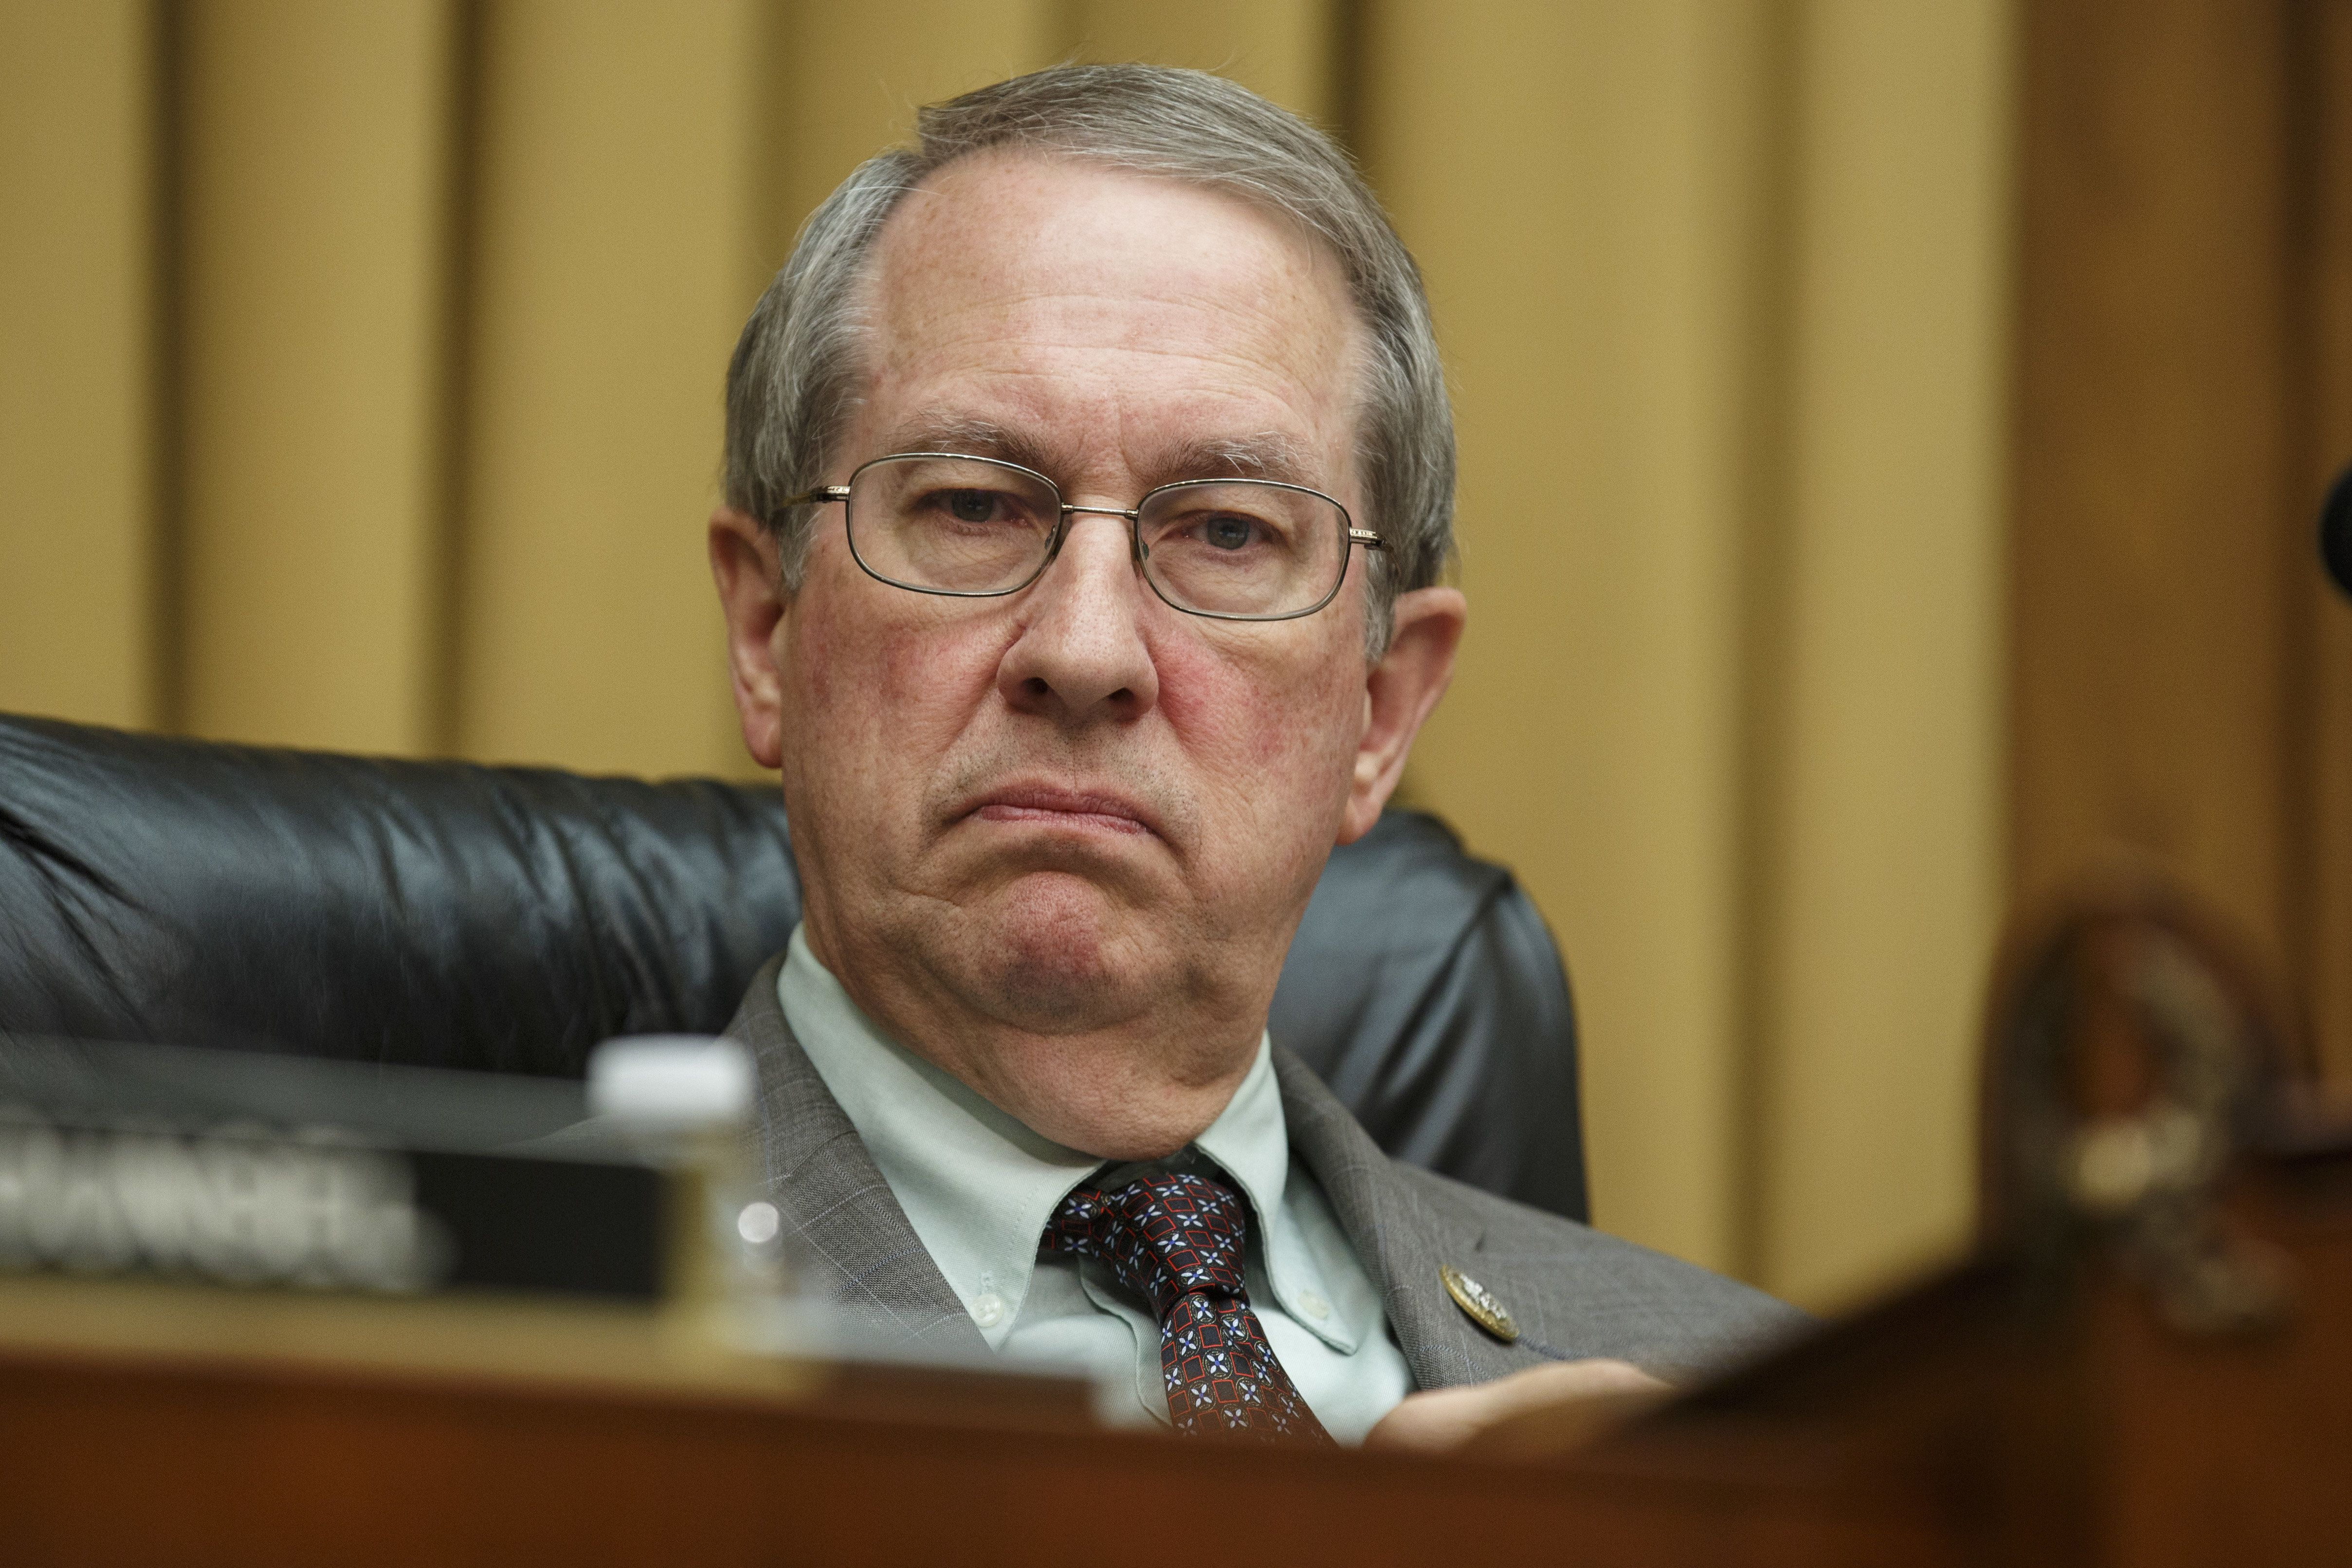 Top GOP Congressmans Son Gives Money To Democrat Running For Fathers Seat